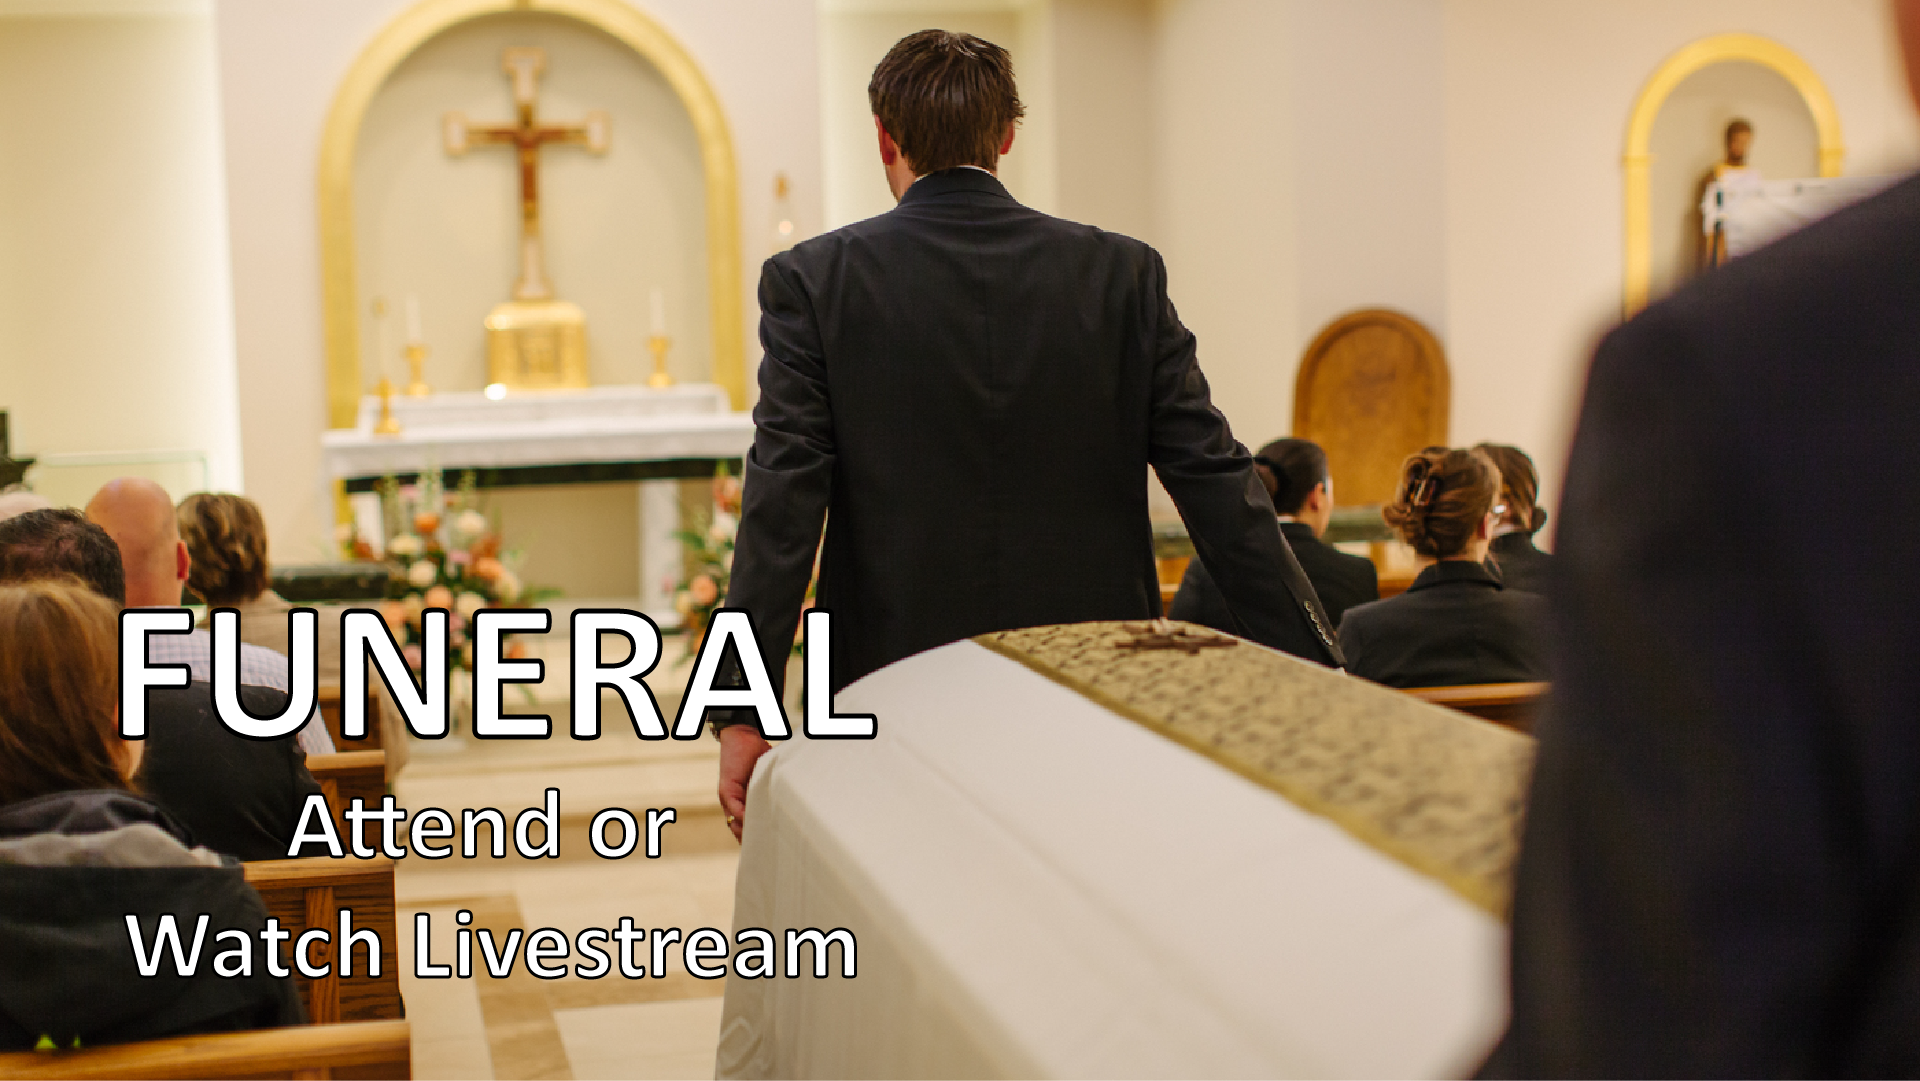 Funeral Attend or Livestream.png